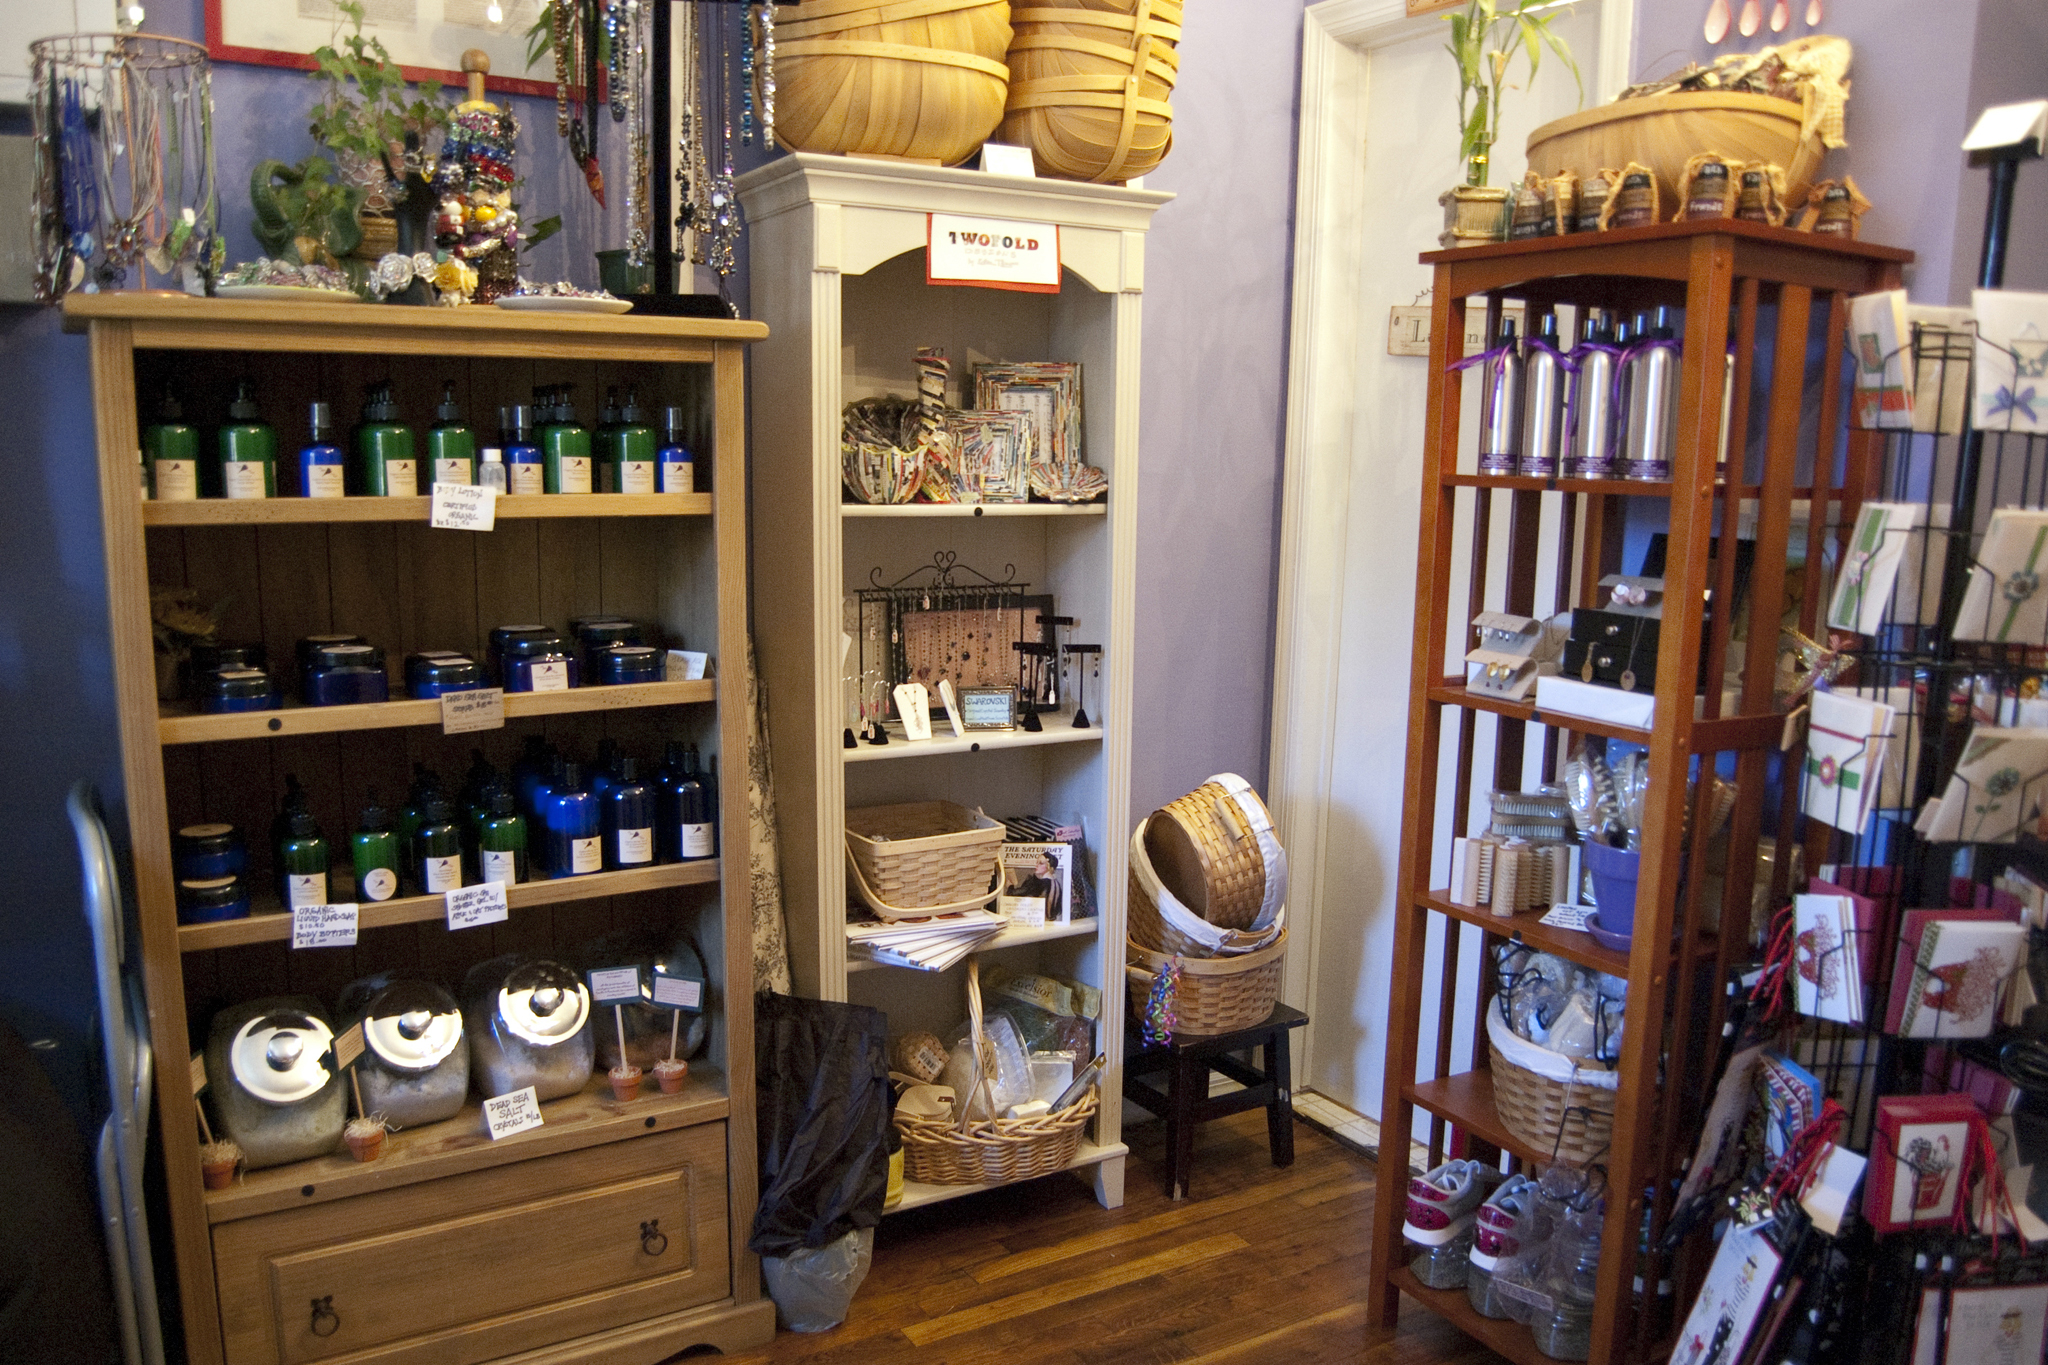 The Little Soap Shop